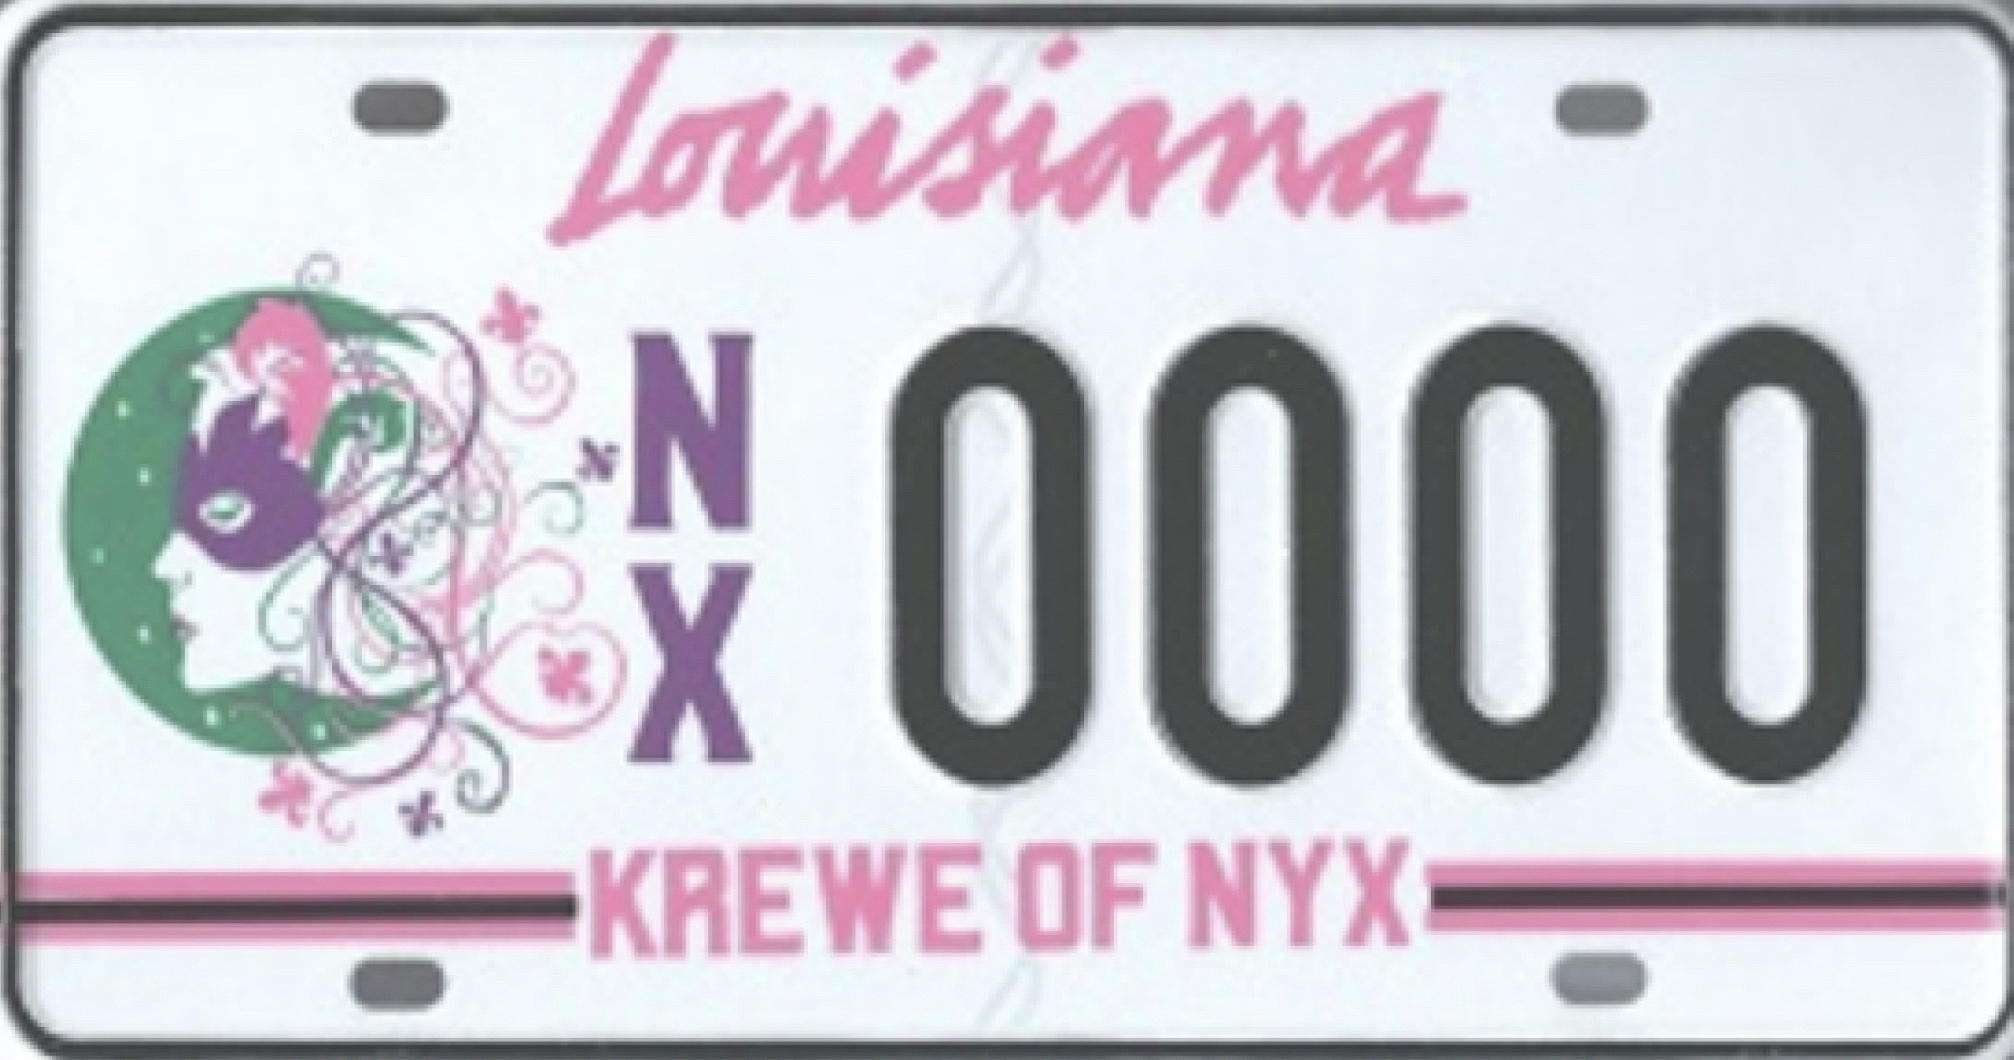 The Krewe of Nyx has been granted a custom Louisiana license plate.